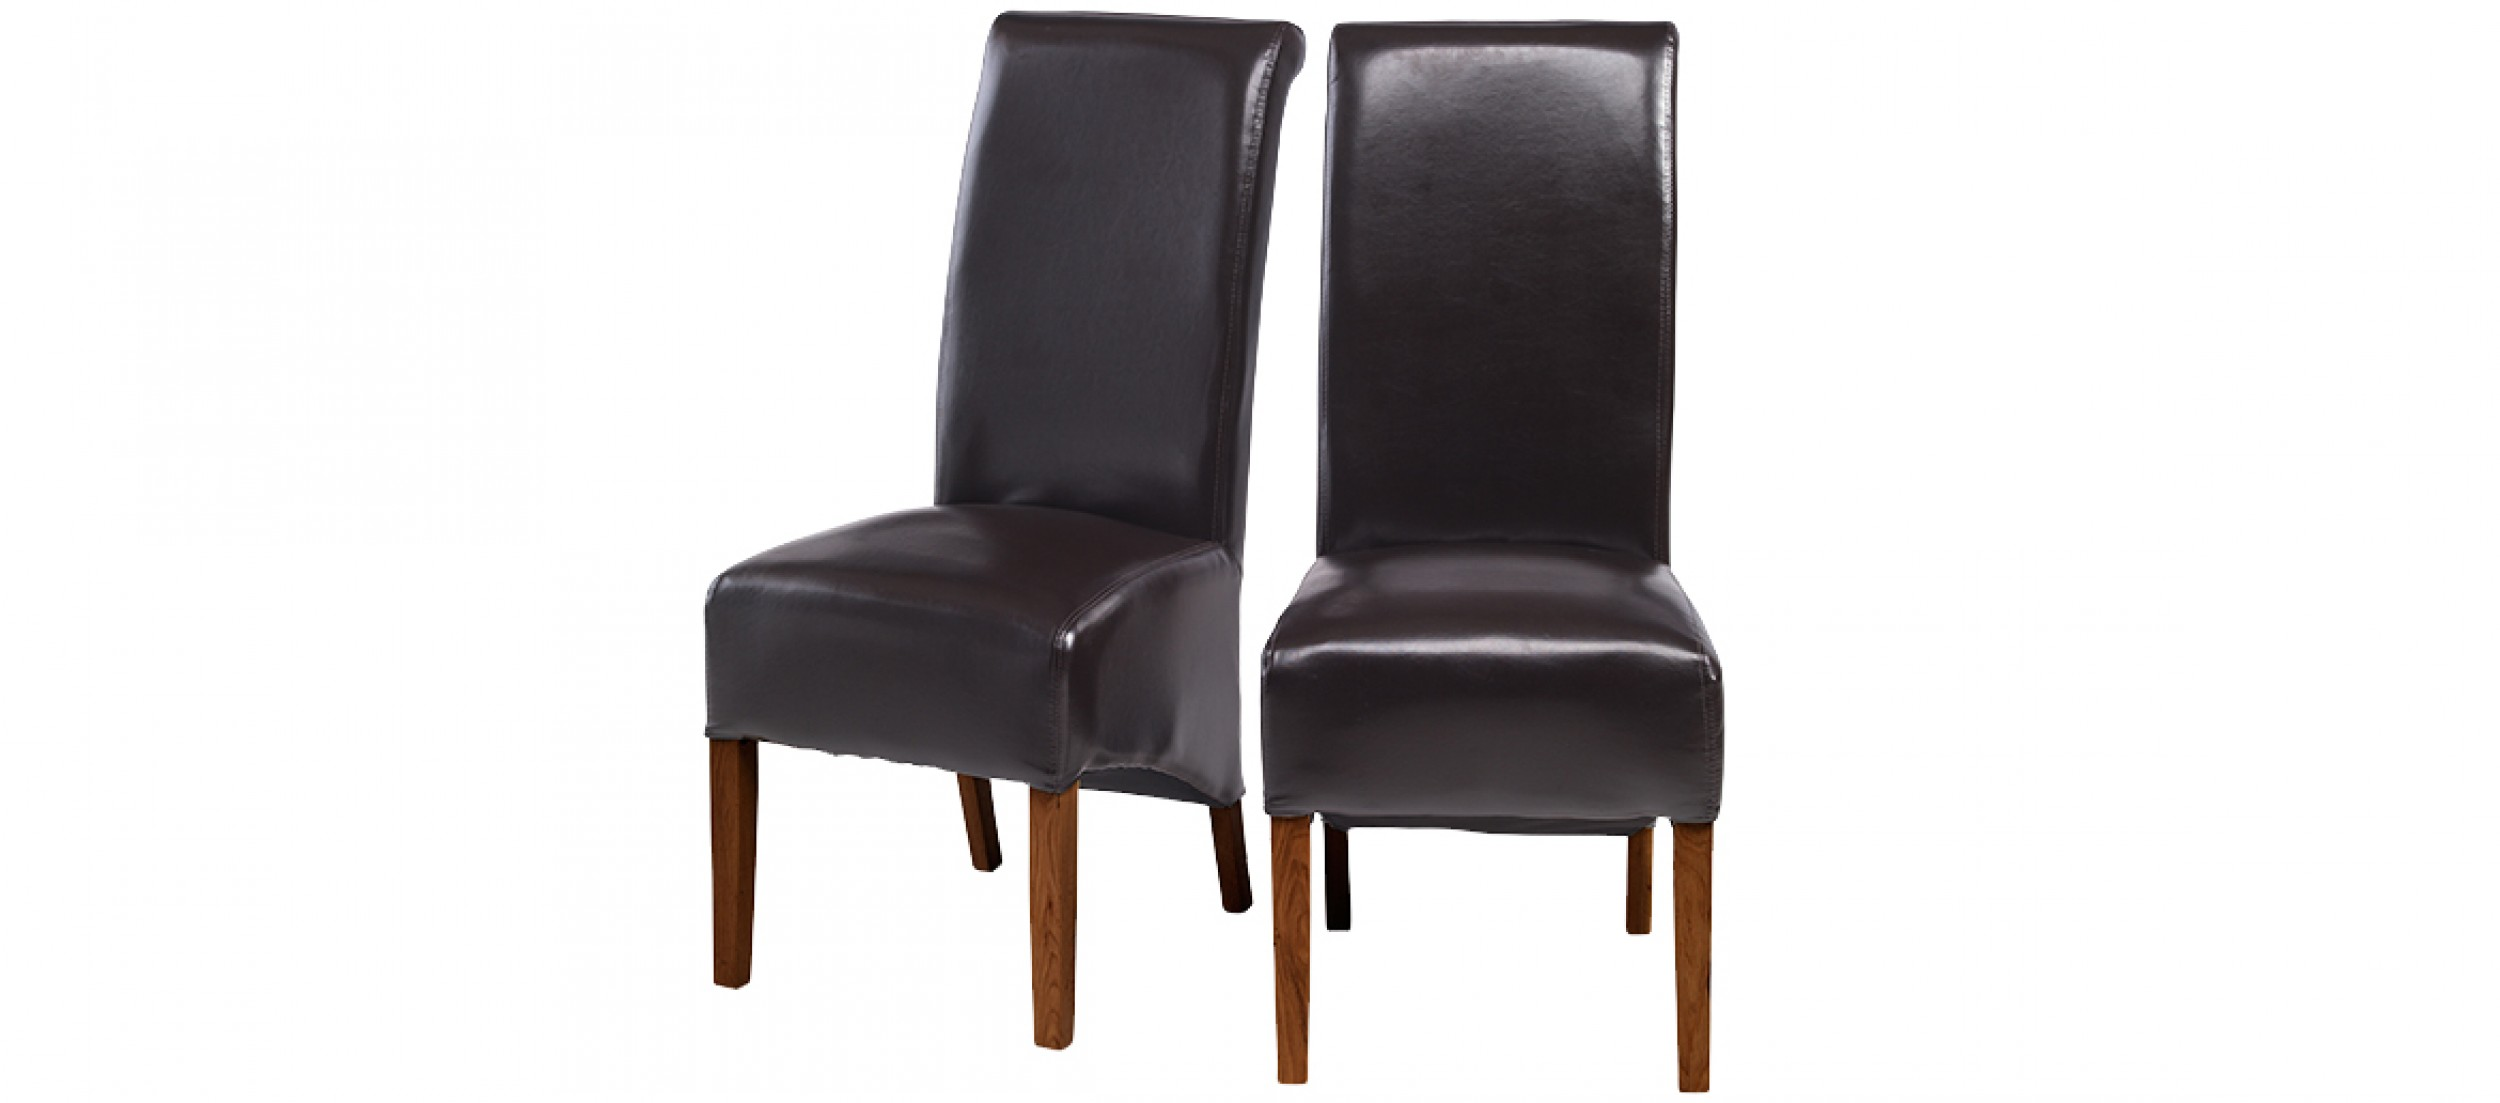 dining chairs brown. Cube Bonded Leather Dining Chairs Brown - Pair H